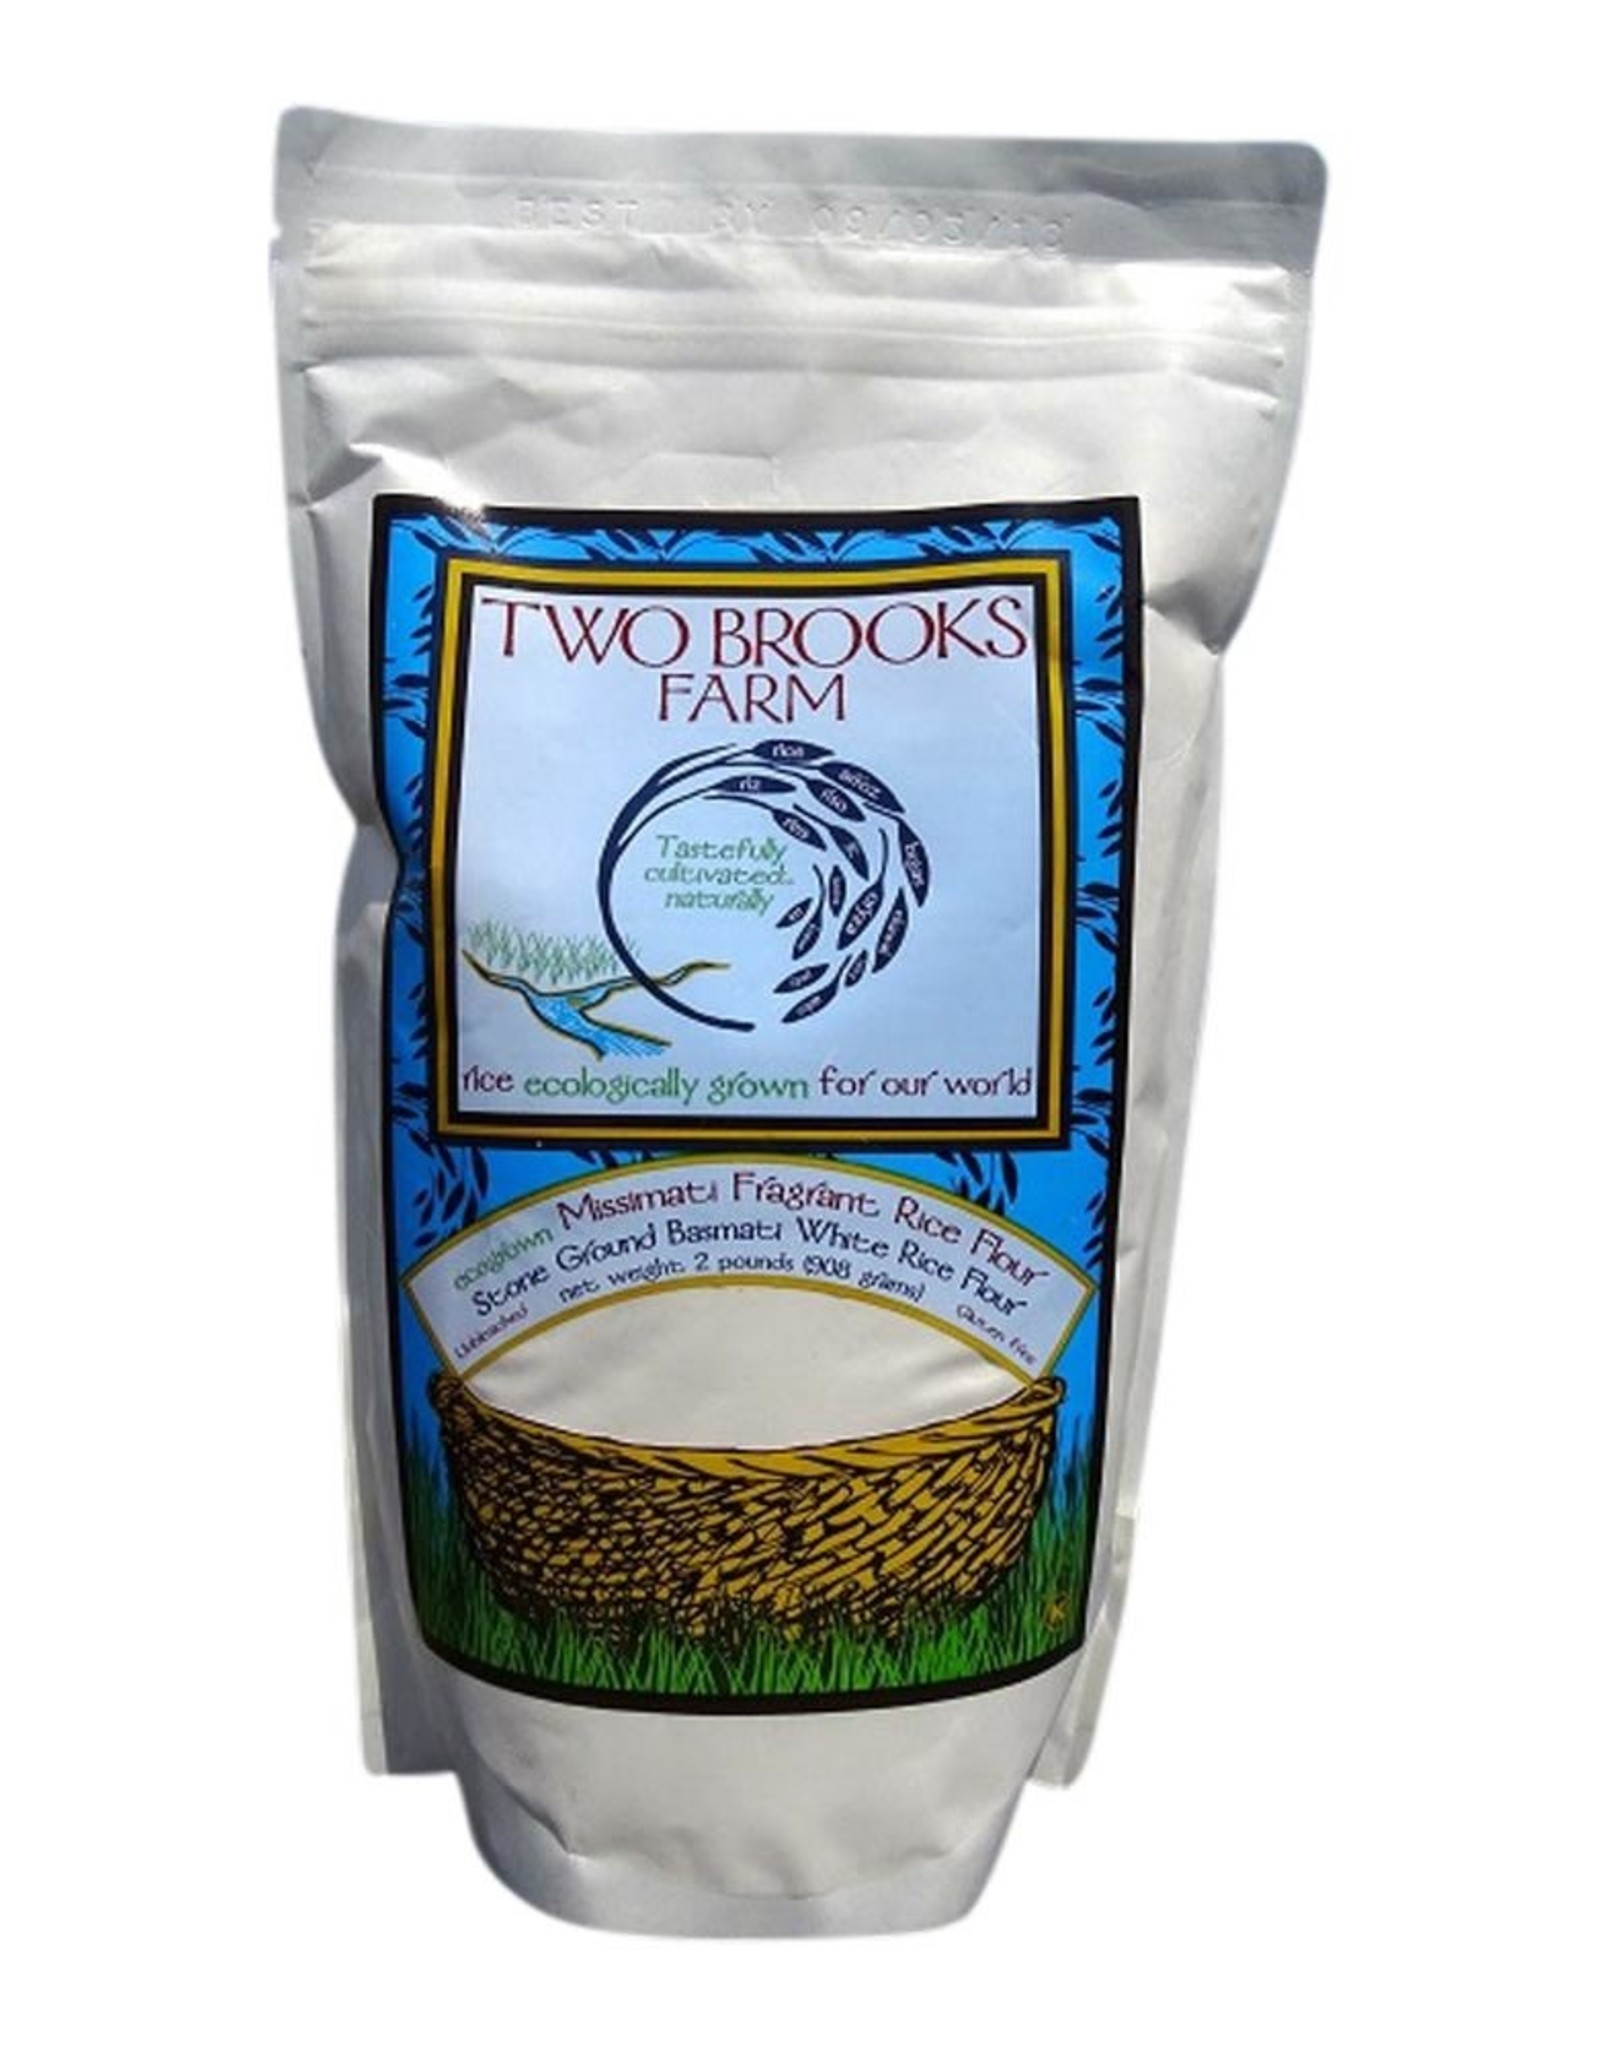 Two Brooks Farm Missimati Fragrant Rice Flour